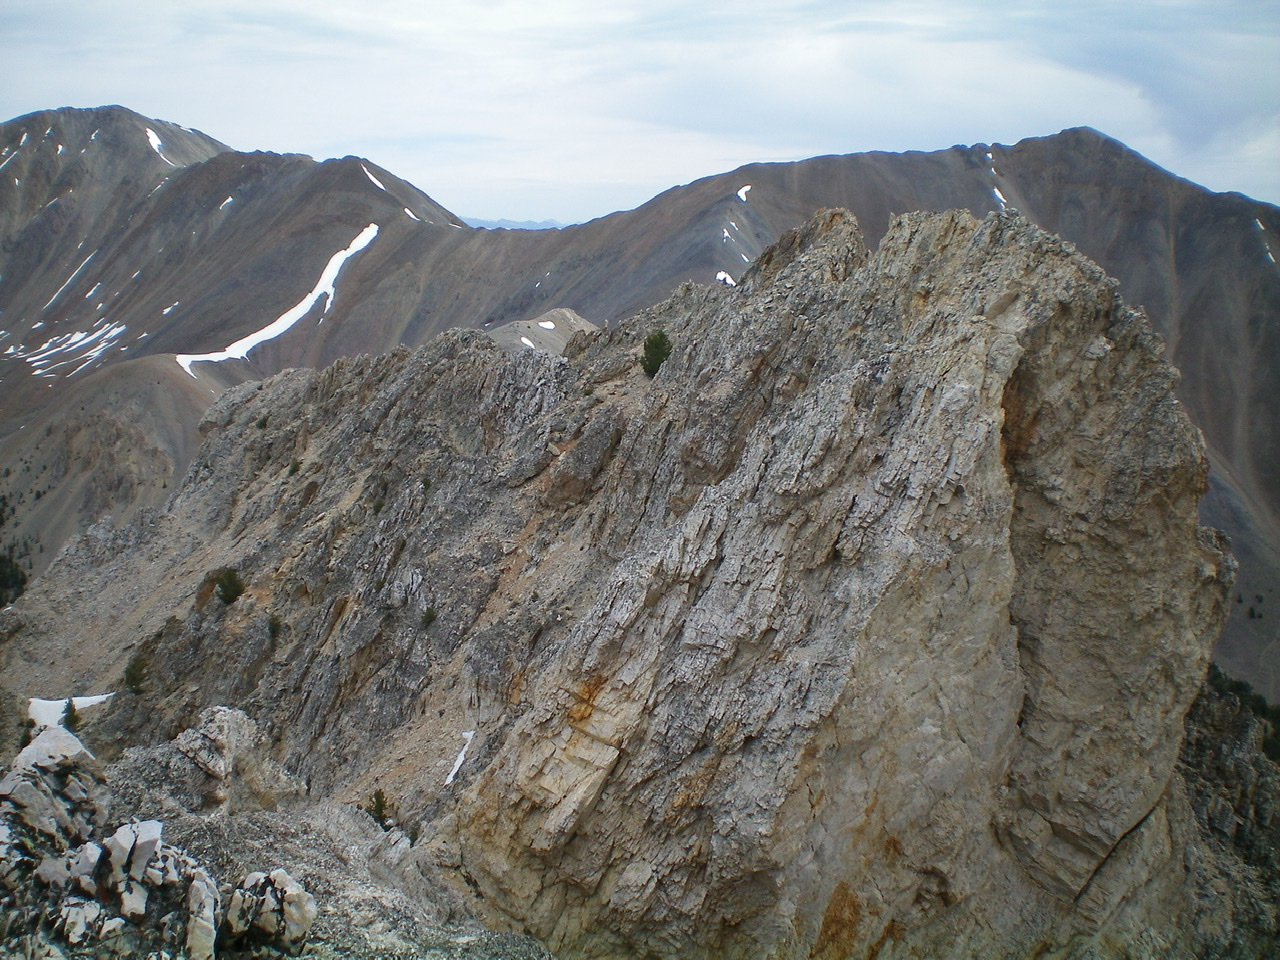 The rugged upper section of the North Ridge as viewed from the North Summit. Livingston Douglas Photo